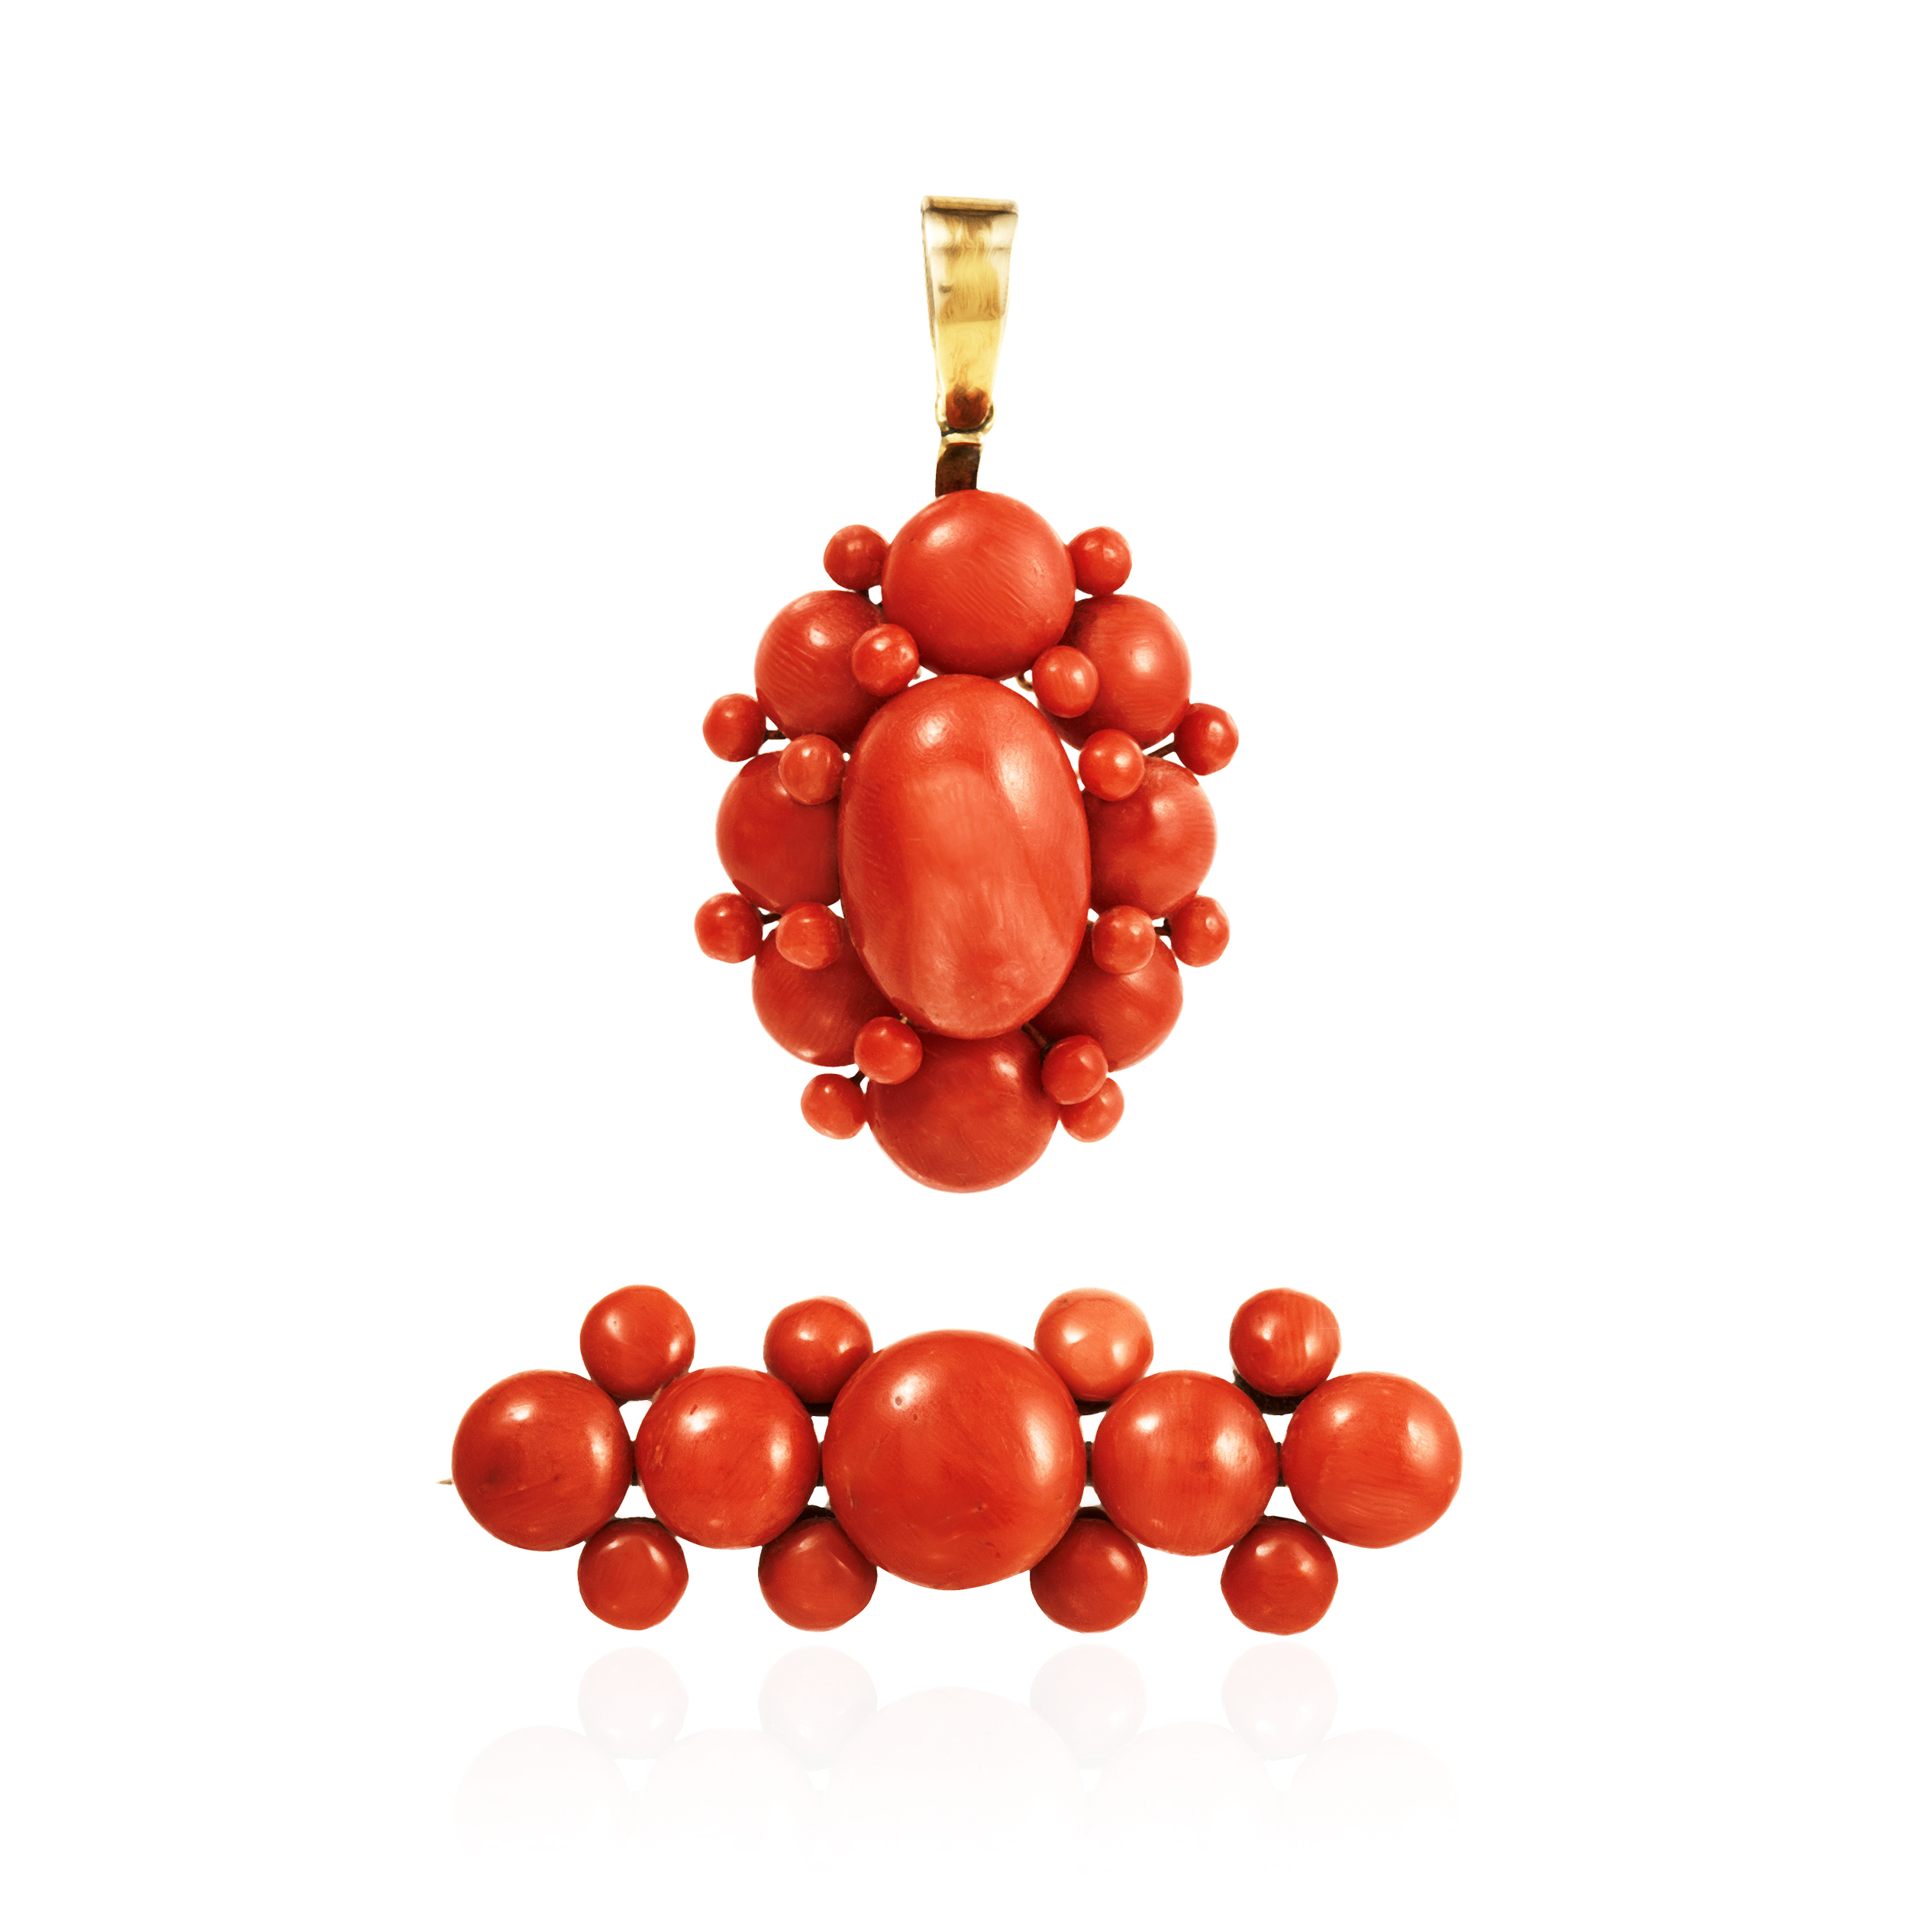 Los 18 - AN ANTIQUE CORAL BROOCH AND PENDANT, ITALIAN CIRCA 1860 the pendant a cluster of coral beads, the